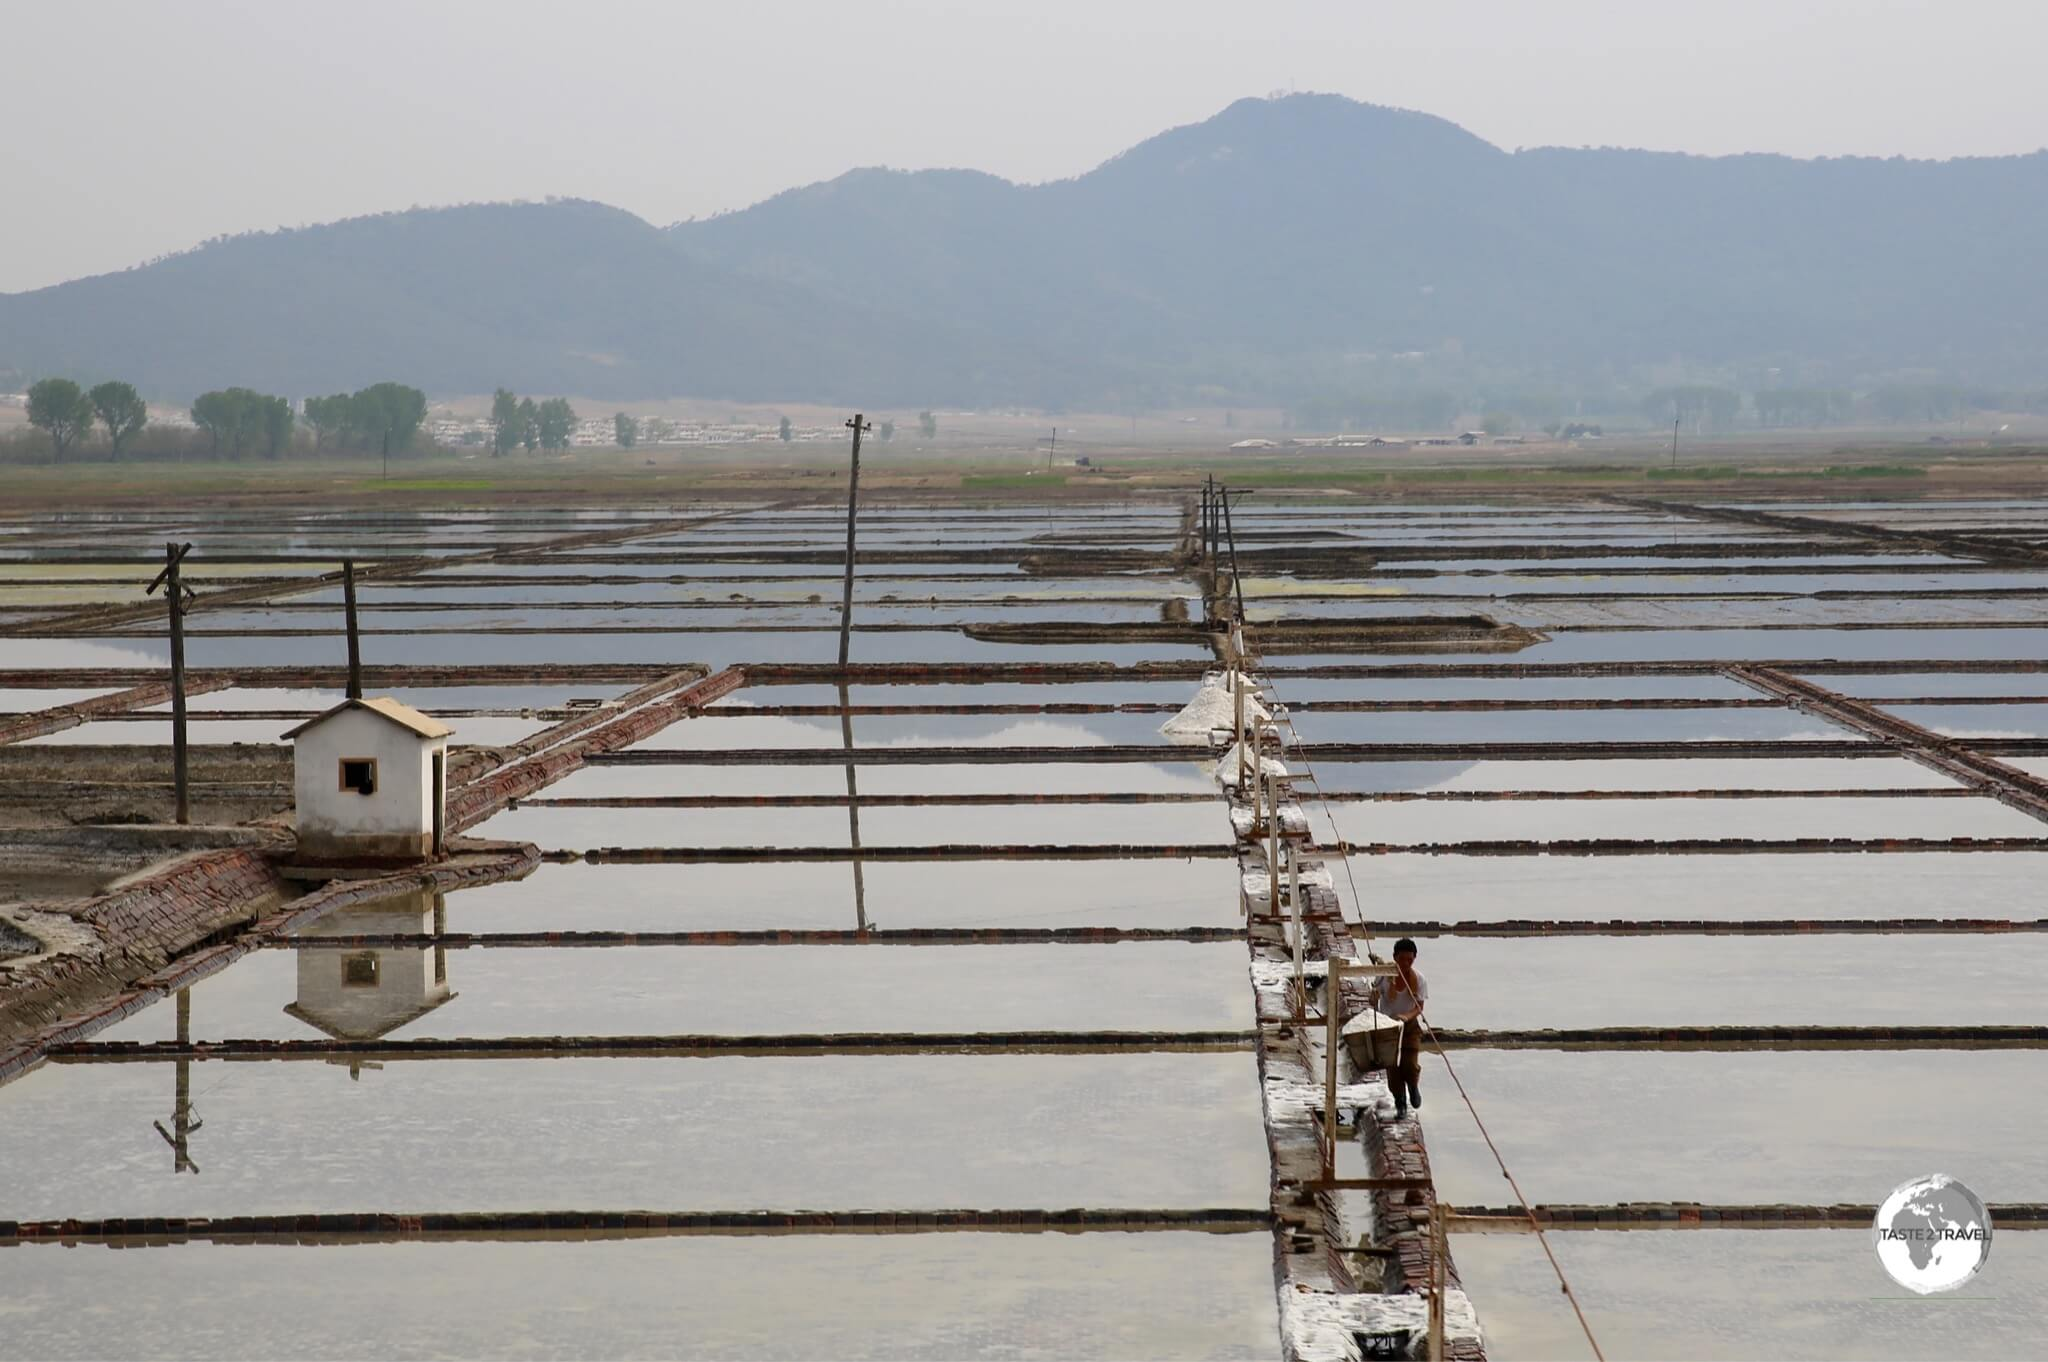 Rice cultivation is extensive throughout DPRK. These paddies are located near to Nampo.